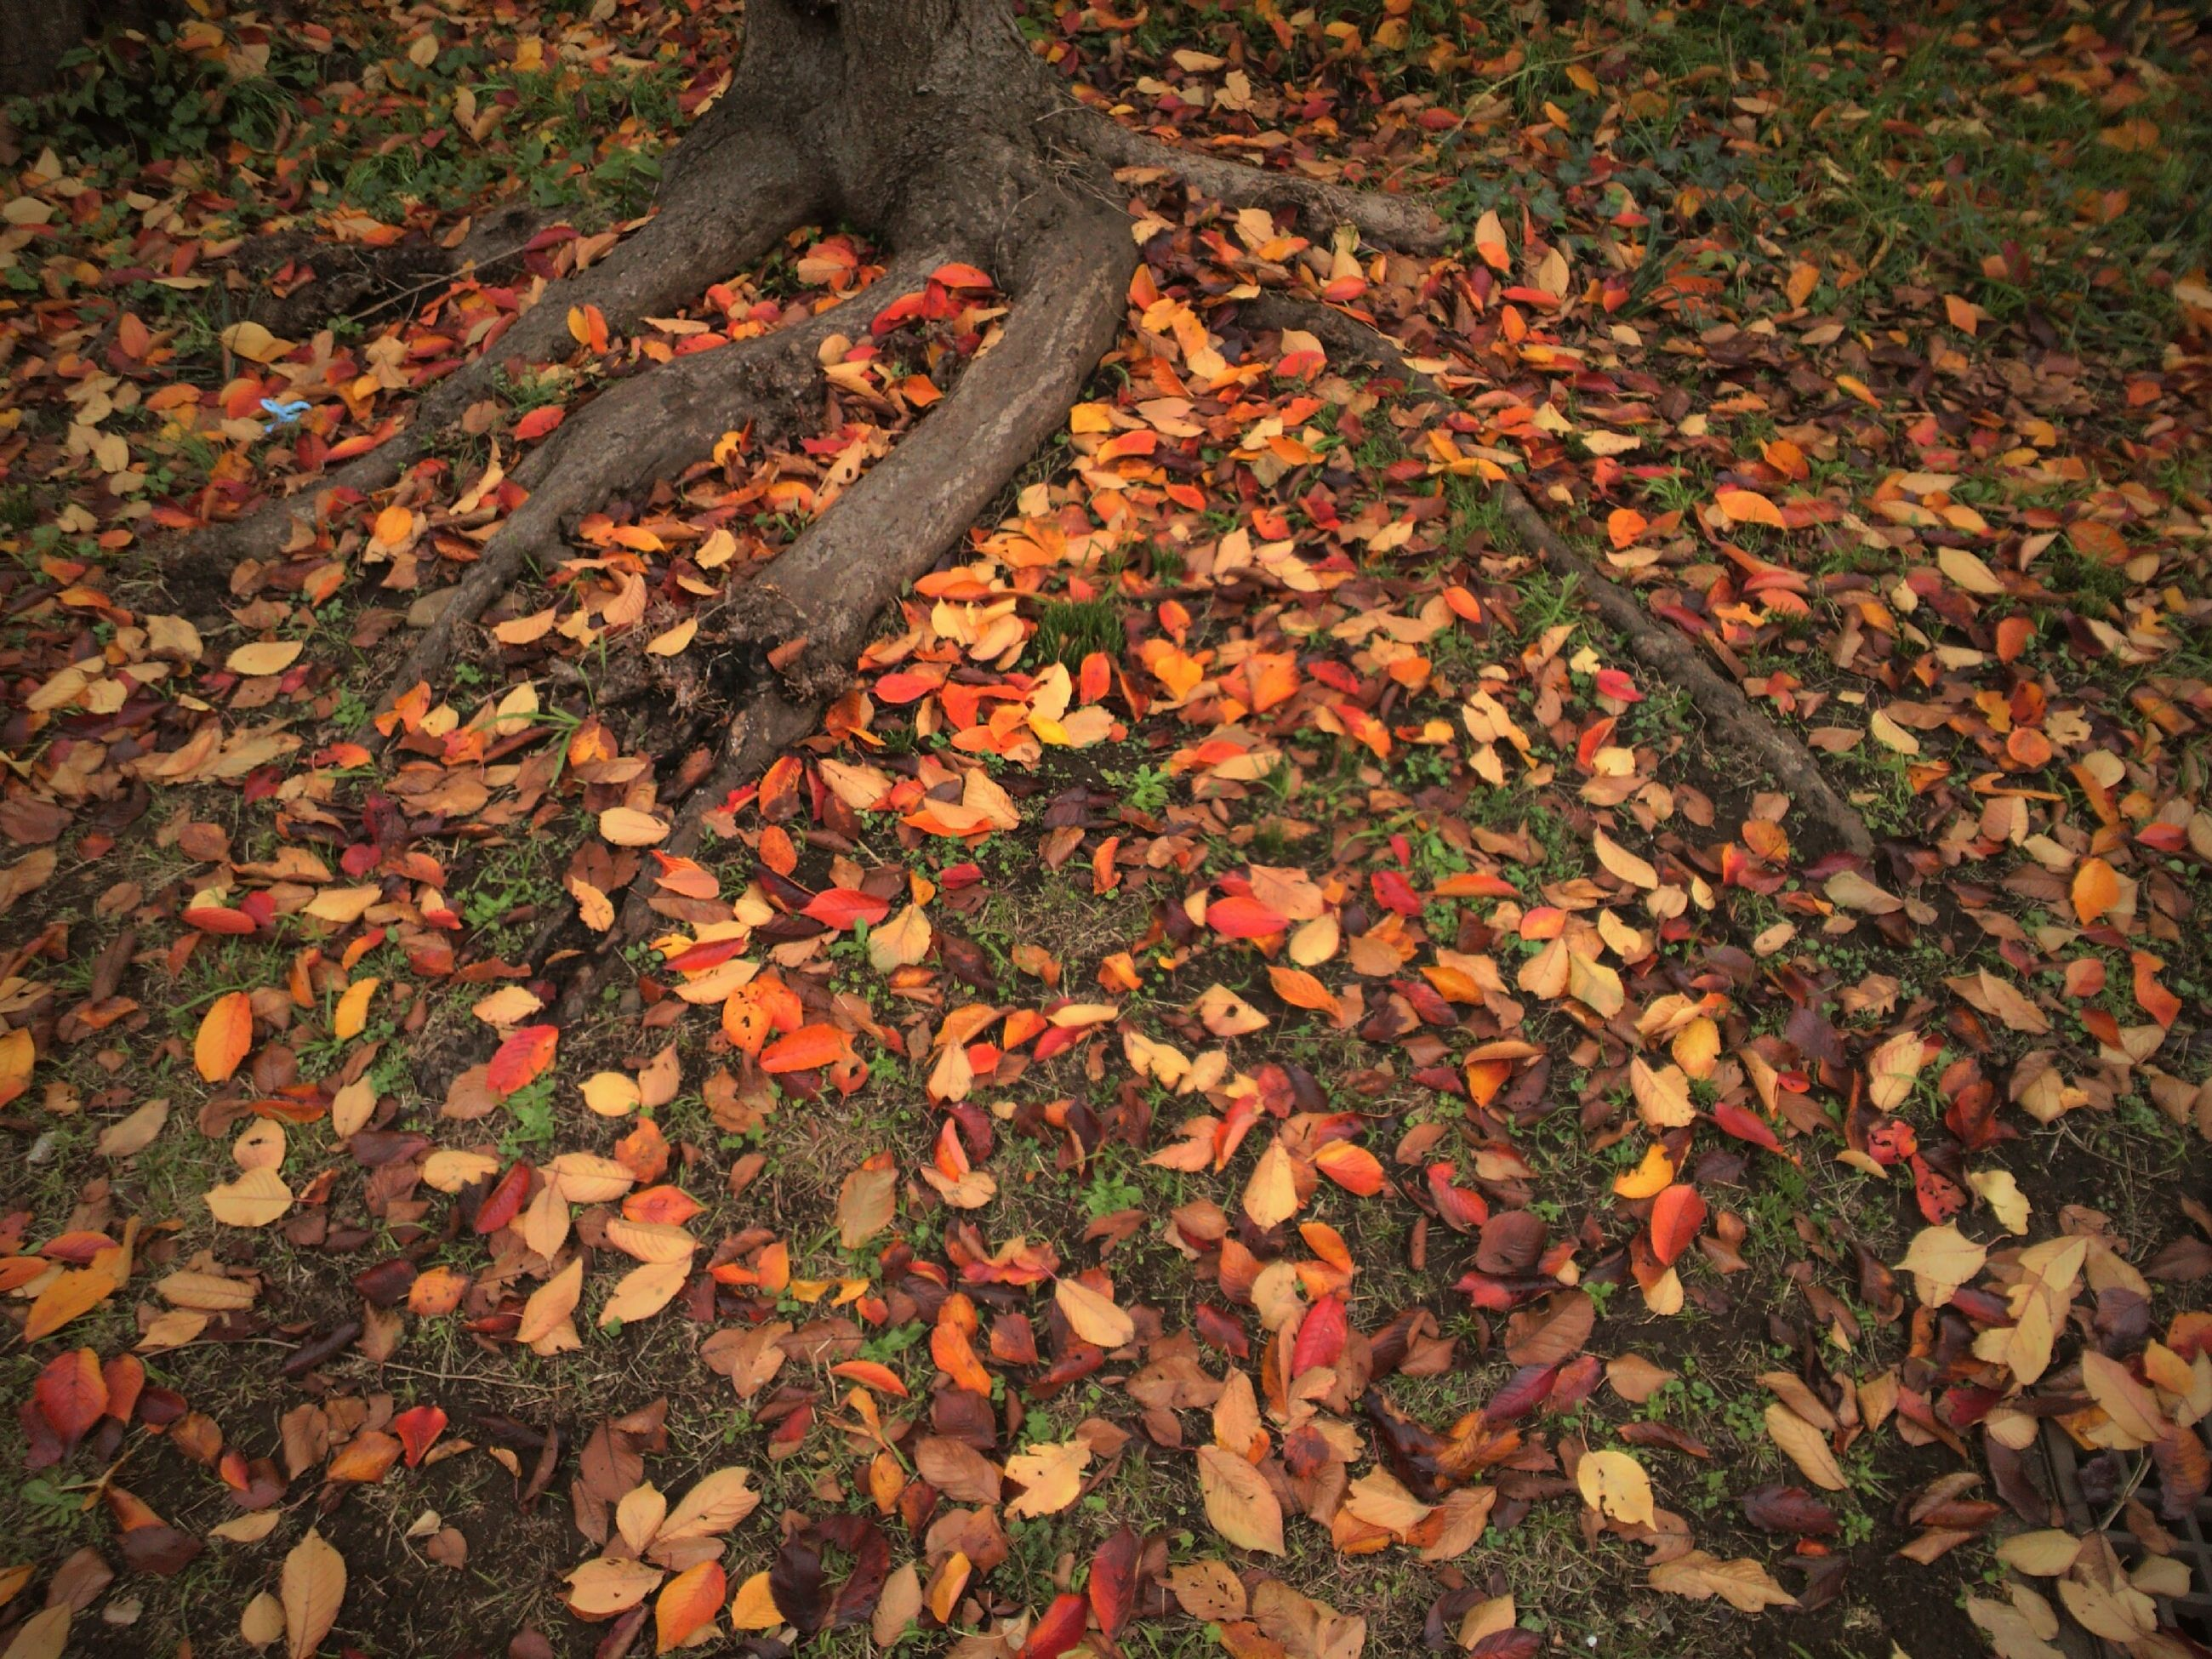 autumn, leaf, change, high angle view, fallen, leaves, dry, season, nature, field, orange color, ground, grass, outdoors, day, falling, maple leaf, tranquility, growth, no people